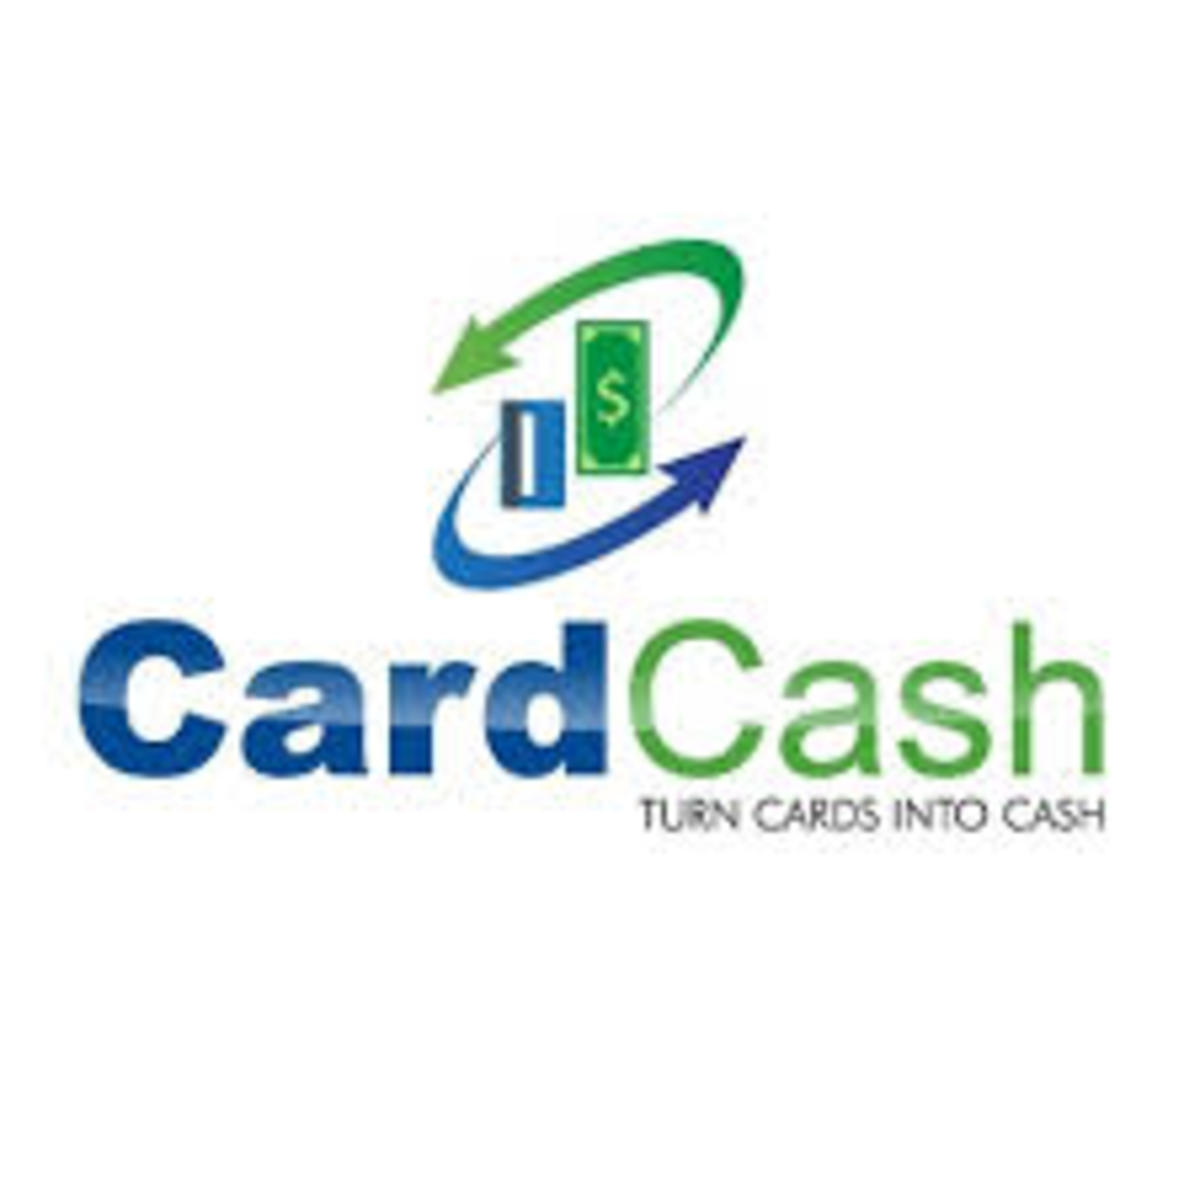 CardCash Offers a Way To Turn Gift Cards Into Cash